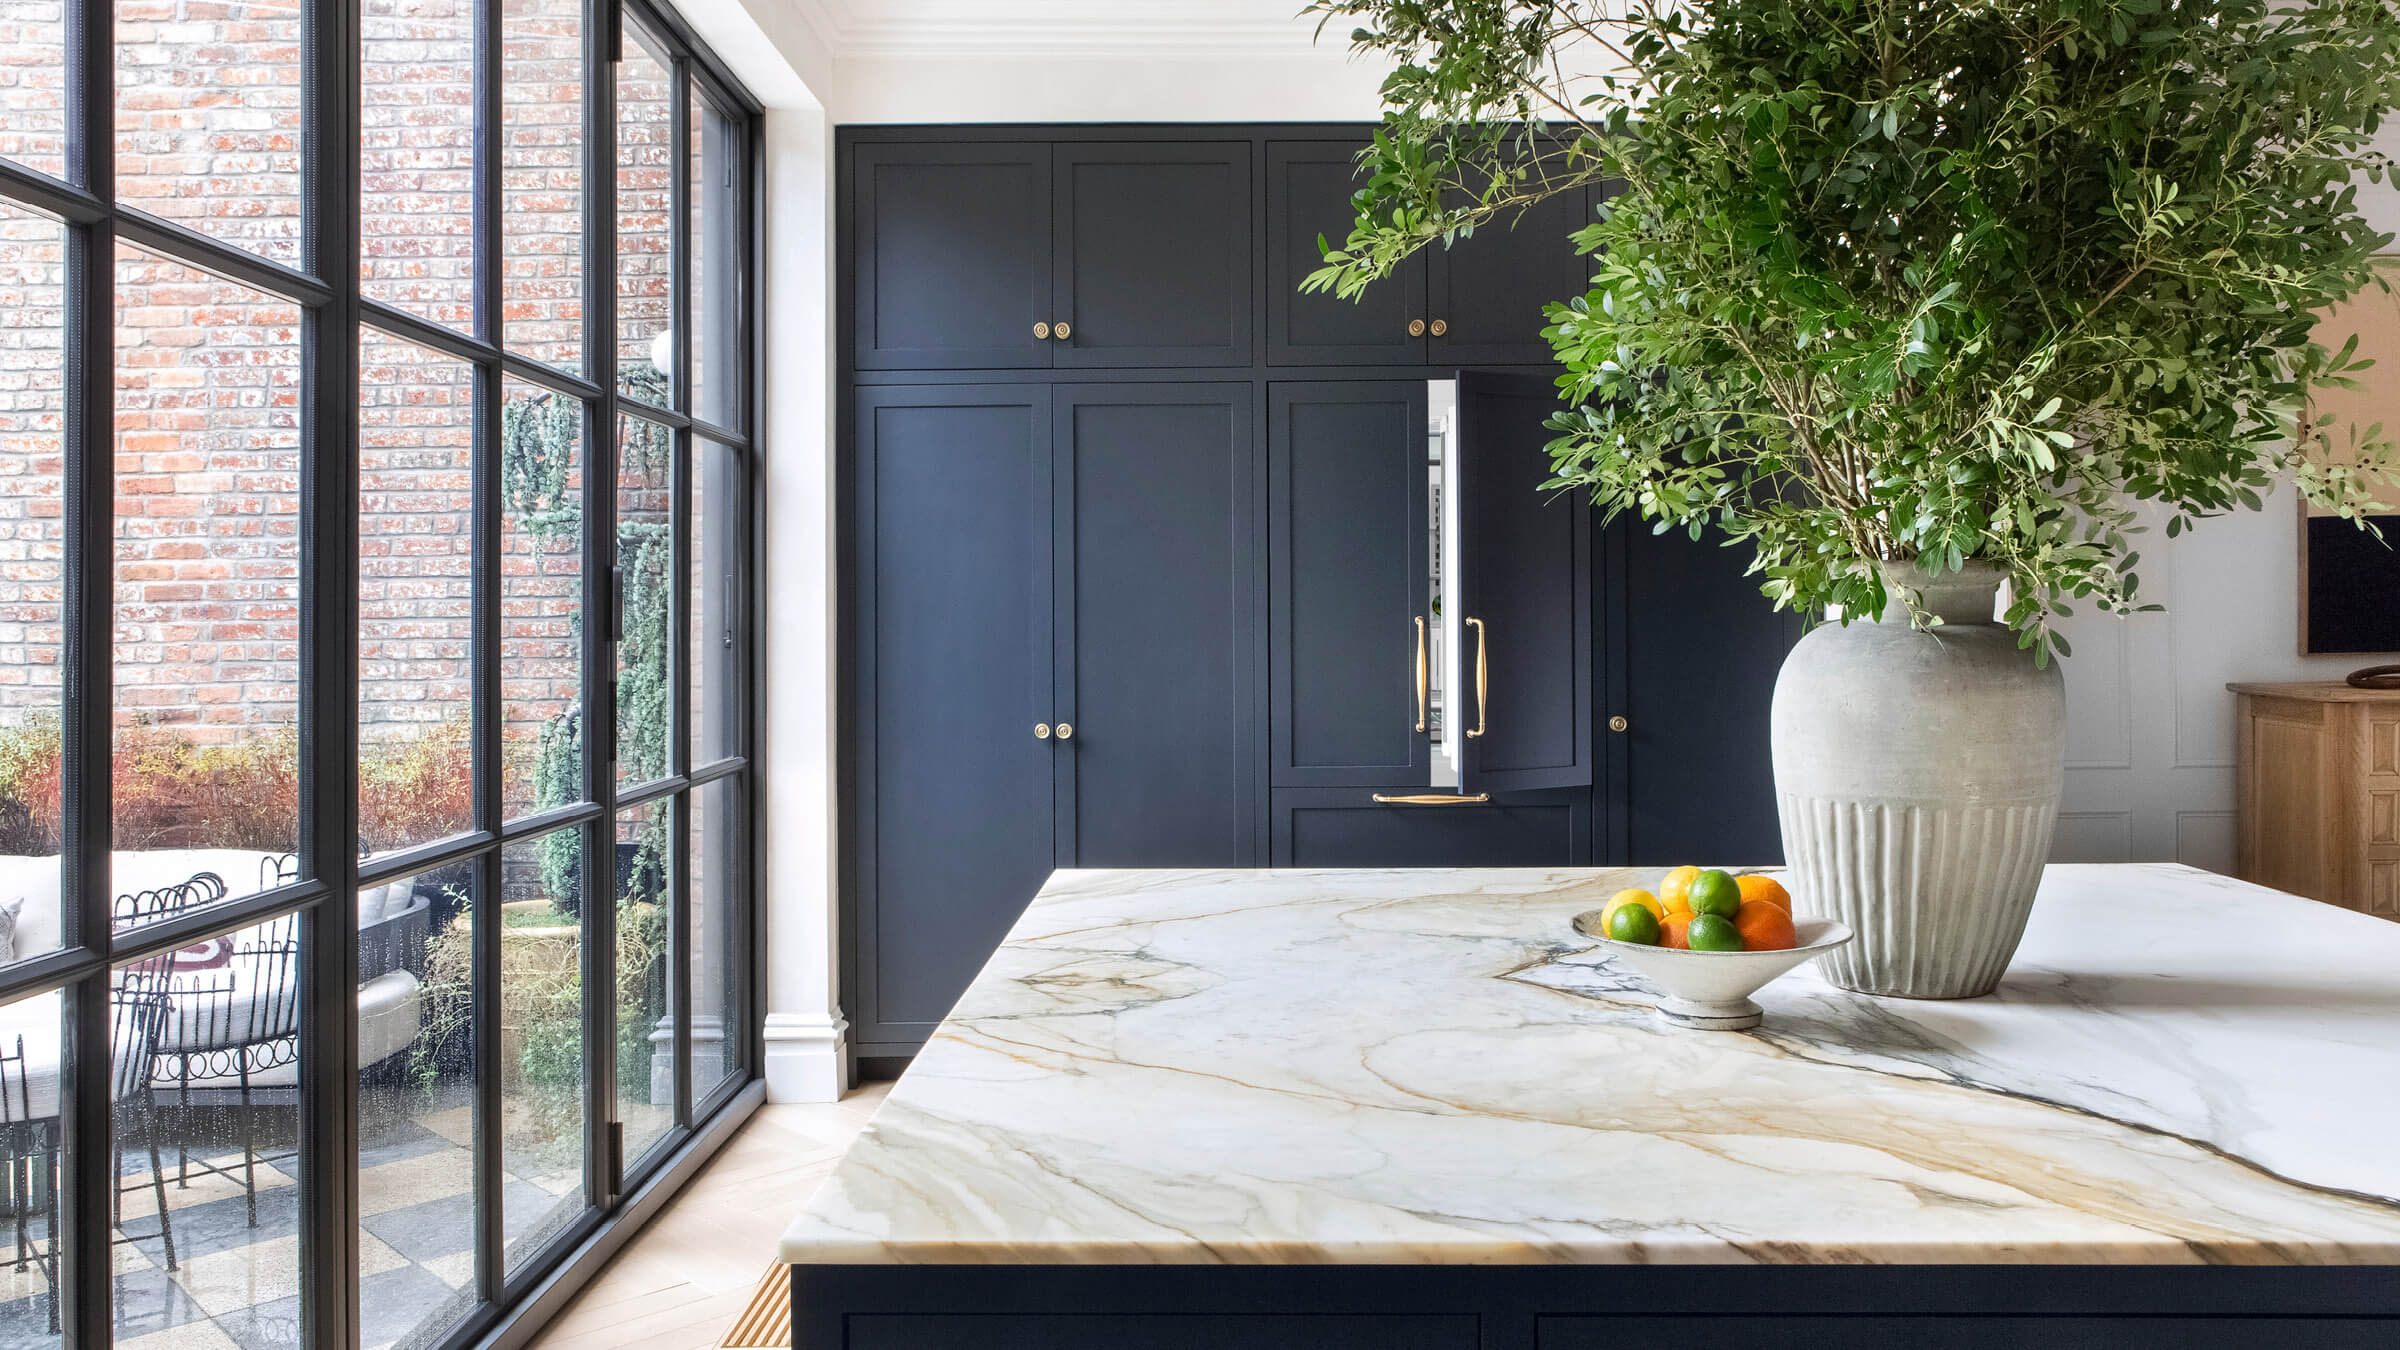 Brooklyn Brownstone Kitchen and Large Black French Doors